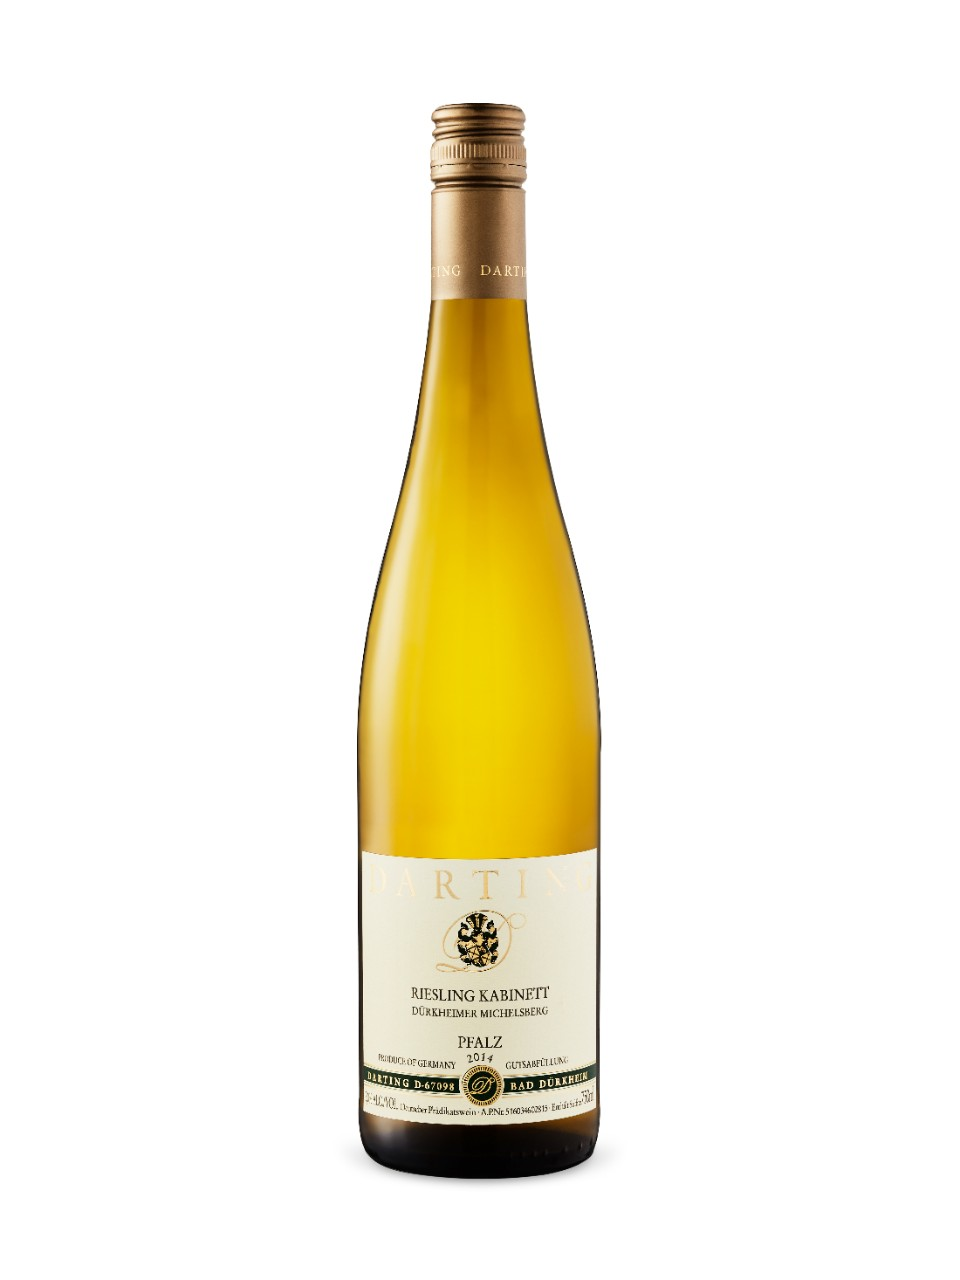 Image for Darting Riesling Kabinett 2014 from LCBO